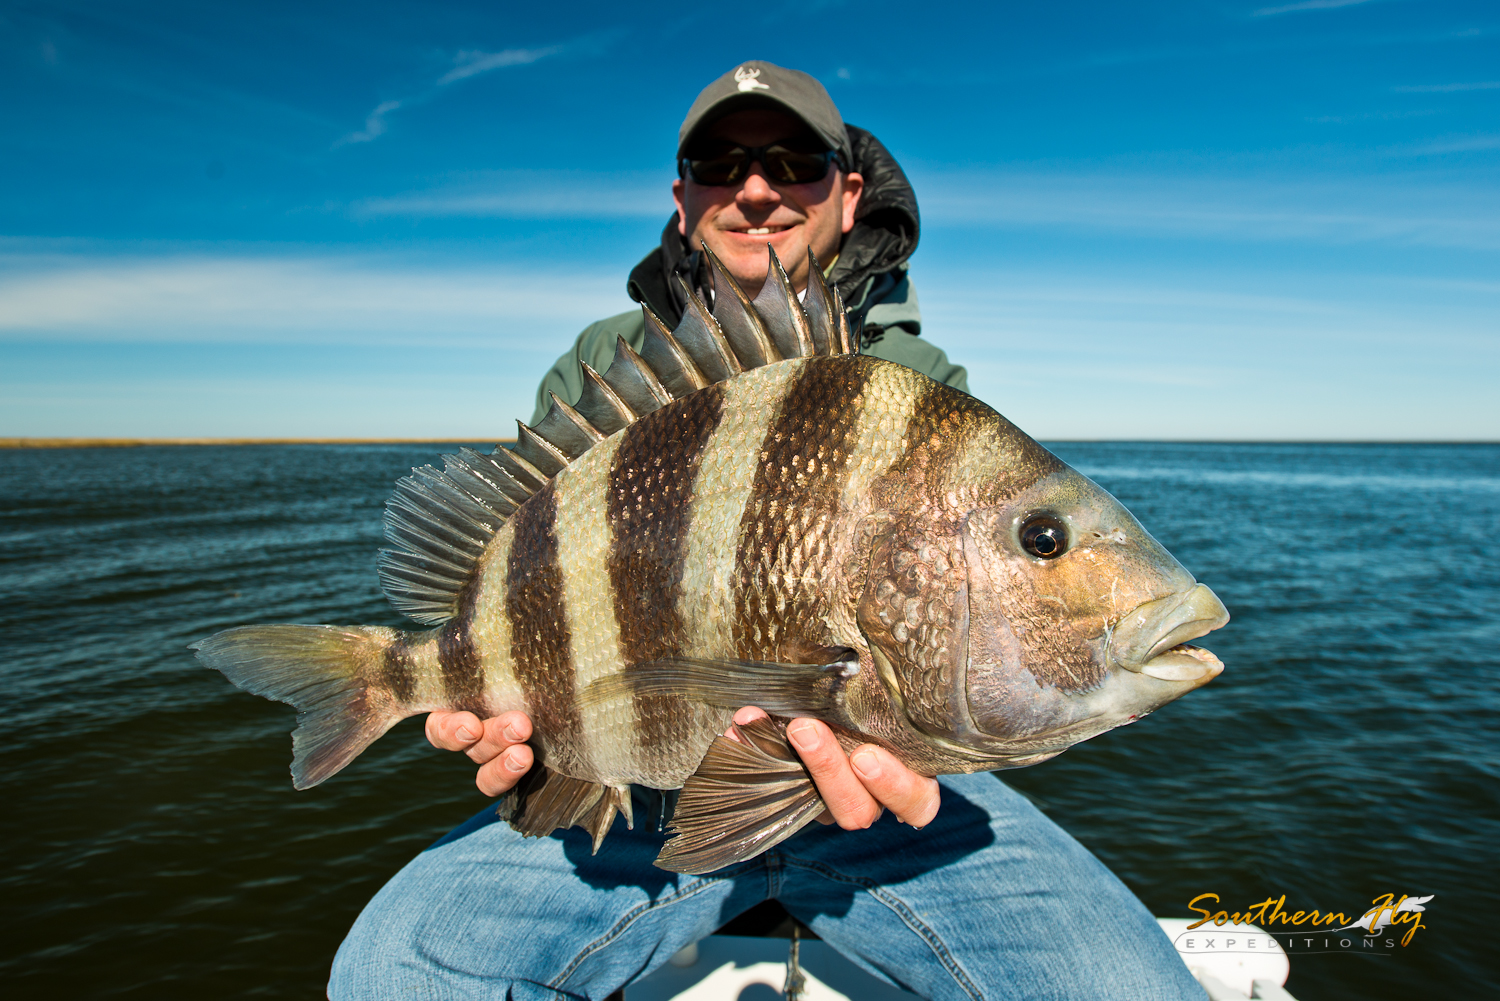 Marsh Sight Fishing Louisiana with Southern Fly Expeditions